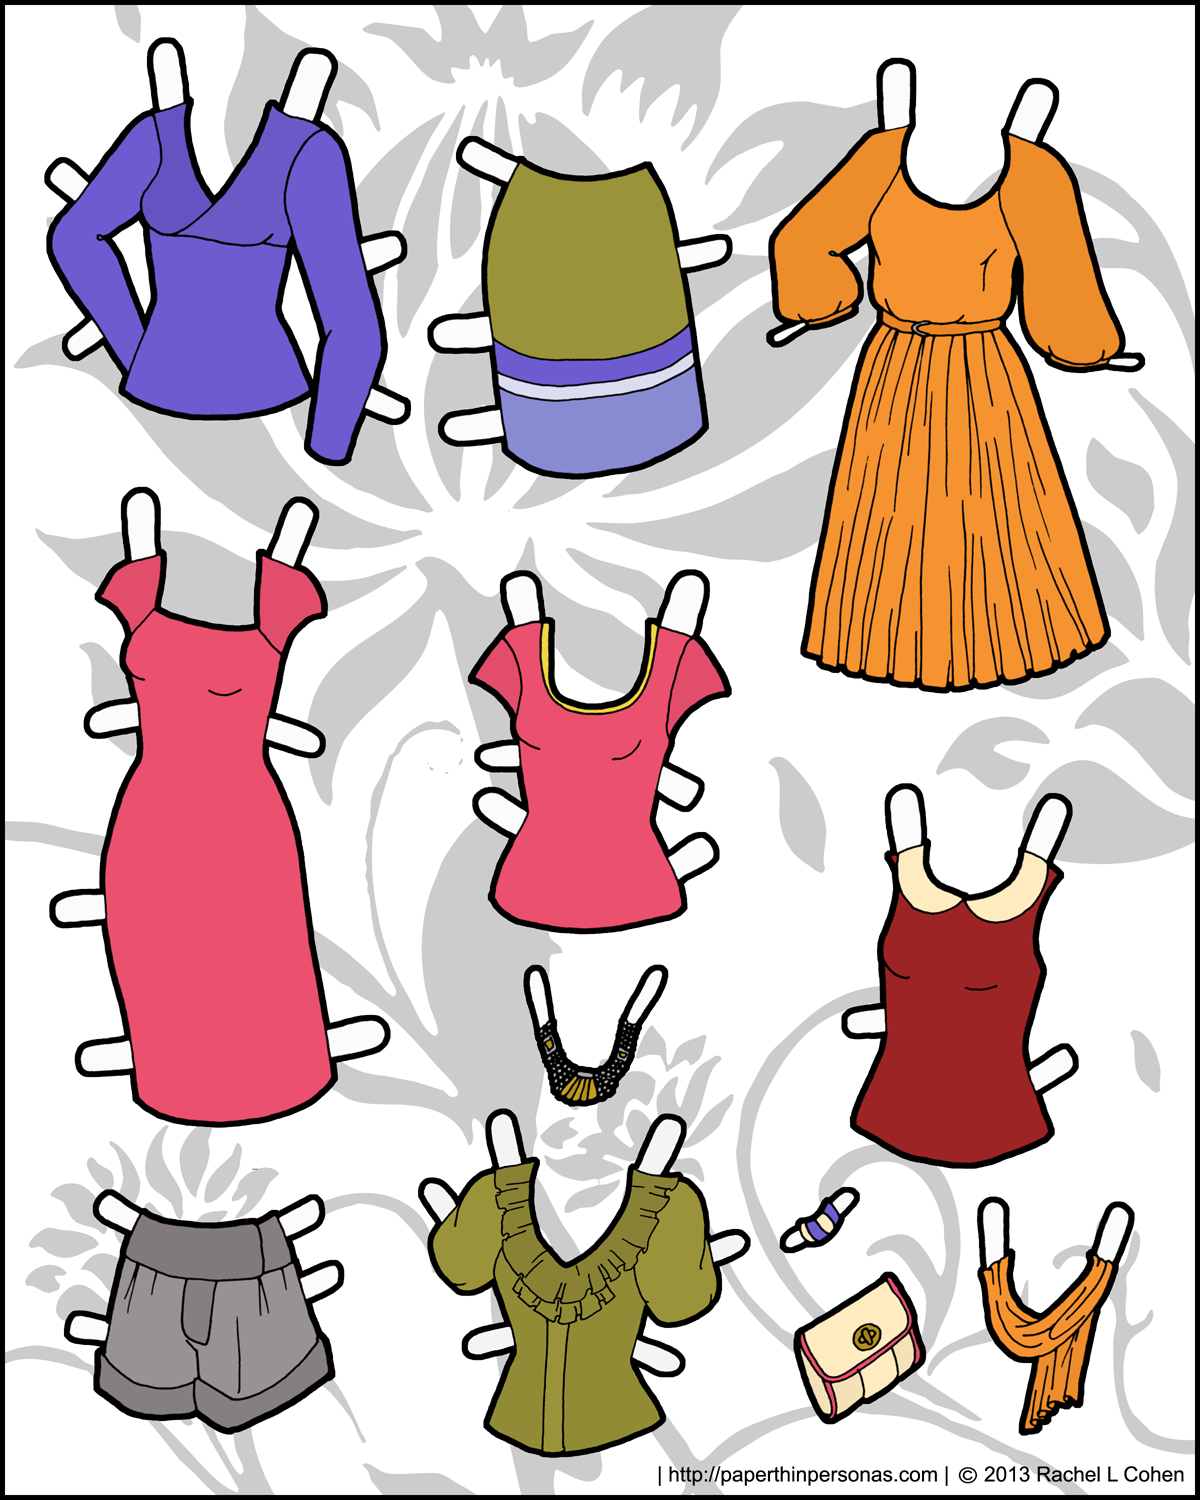 graphic about Paper Doll Clothing Printable referred to as Some a lot more paper doll outfits for the Mannequins Paper